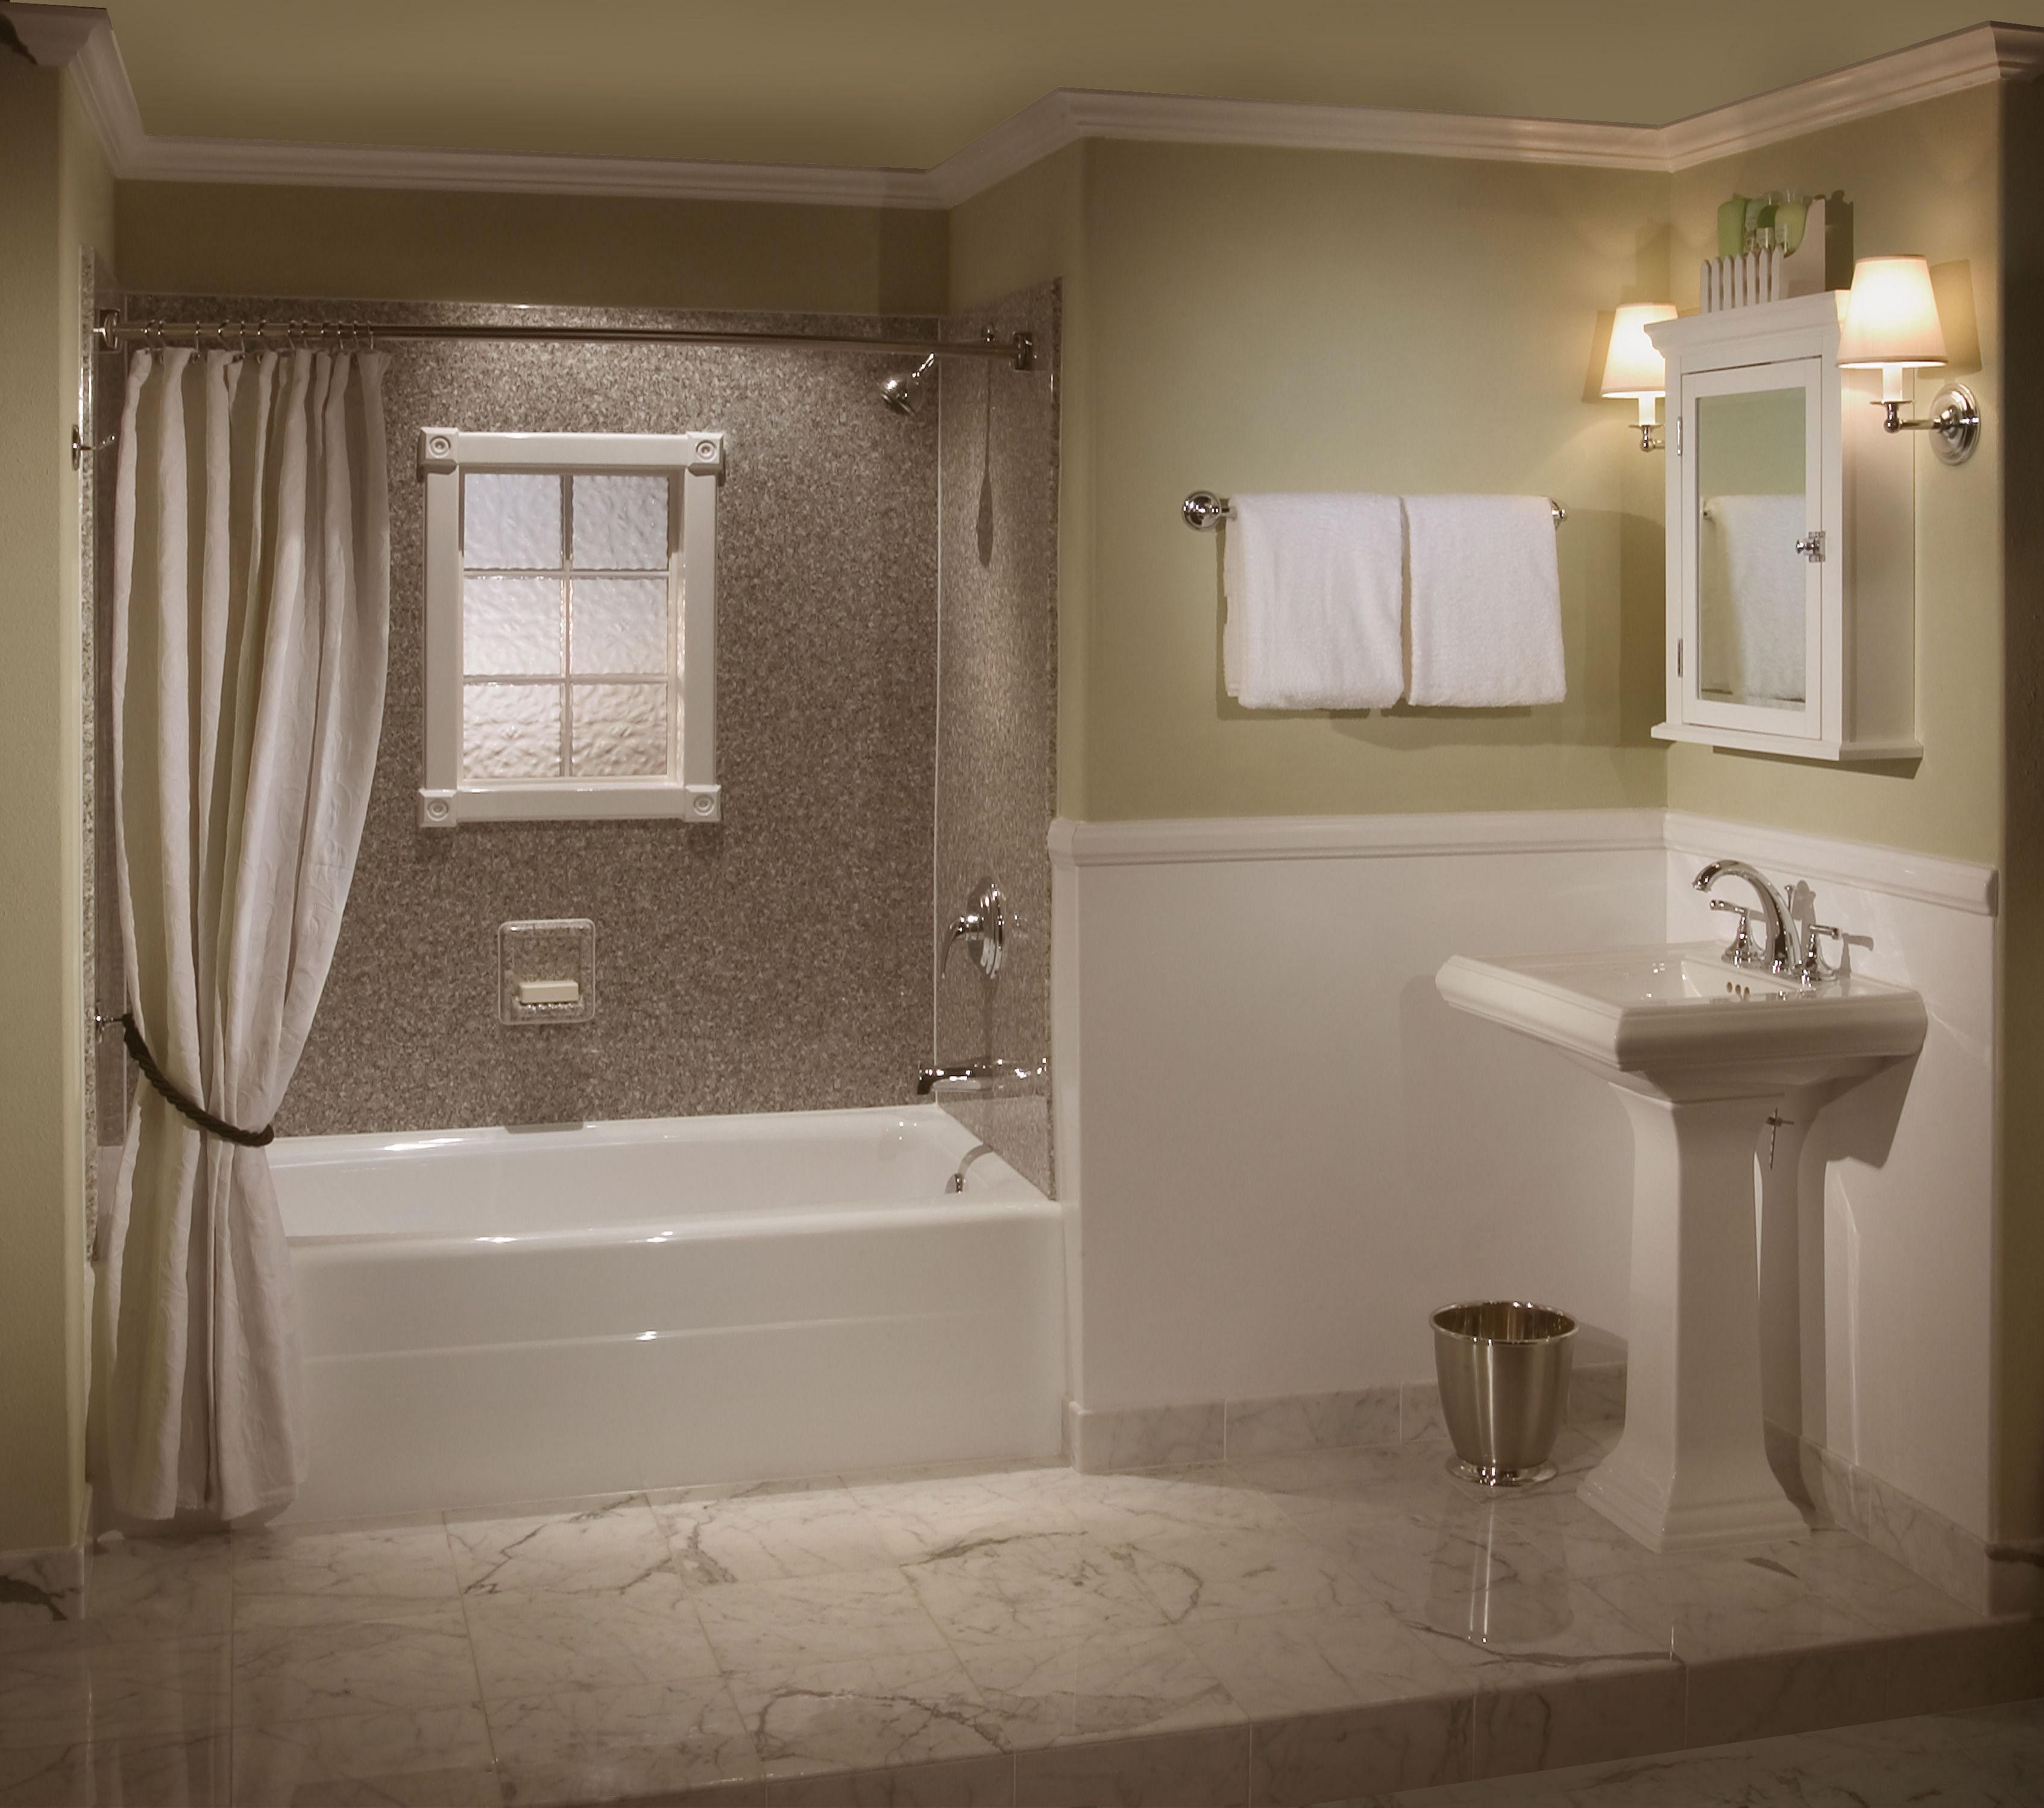 15 awesome small bathroom remodeling design ideas for on bathroom renovation ideas id=89972